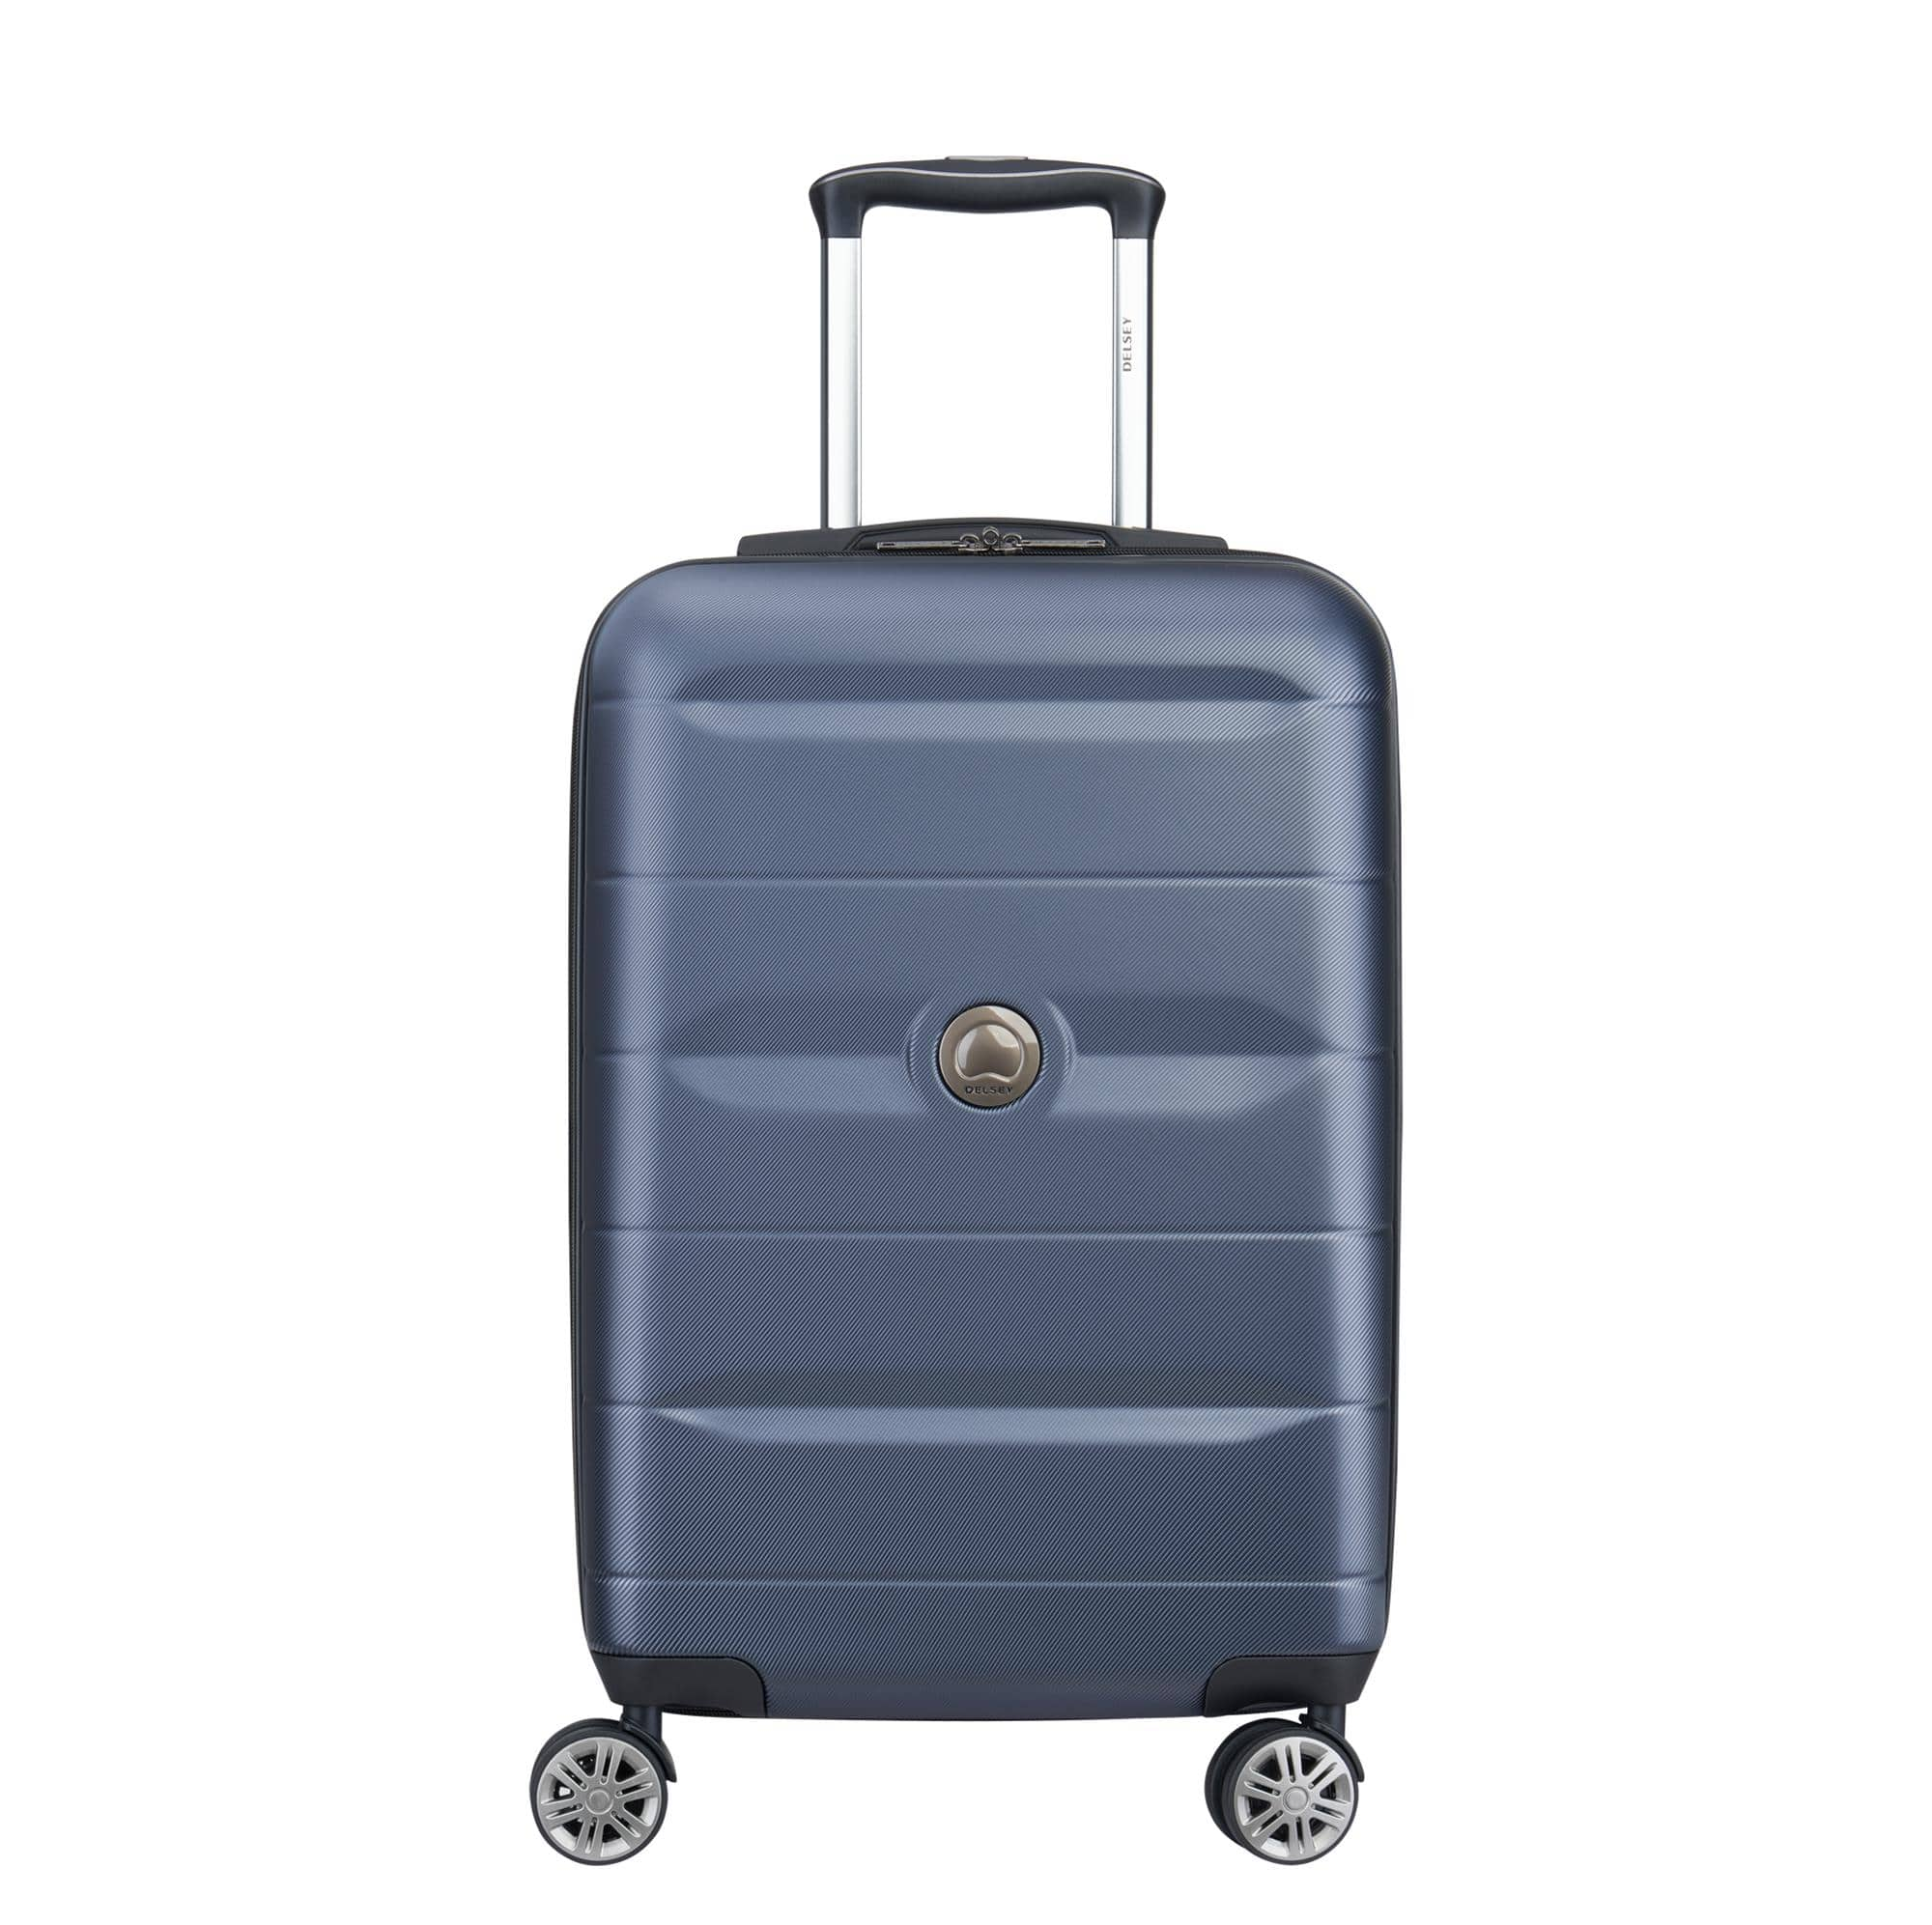 Delsey Comete 2.0 LE Carry-on Spinner Luggage (22.5 x 14.25 x 9.5 inches) $56 AC + Free Shipping